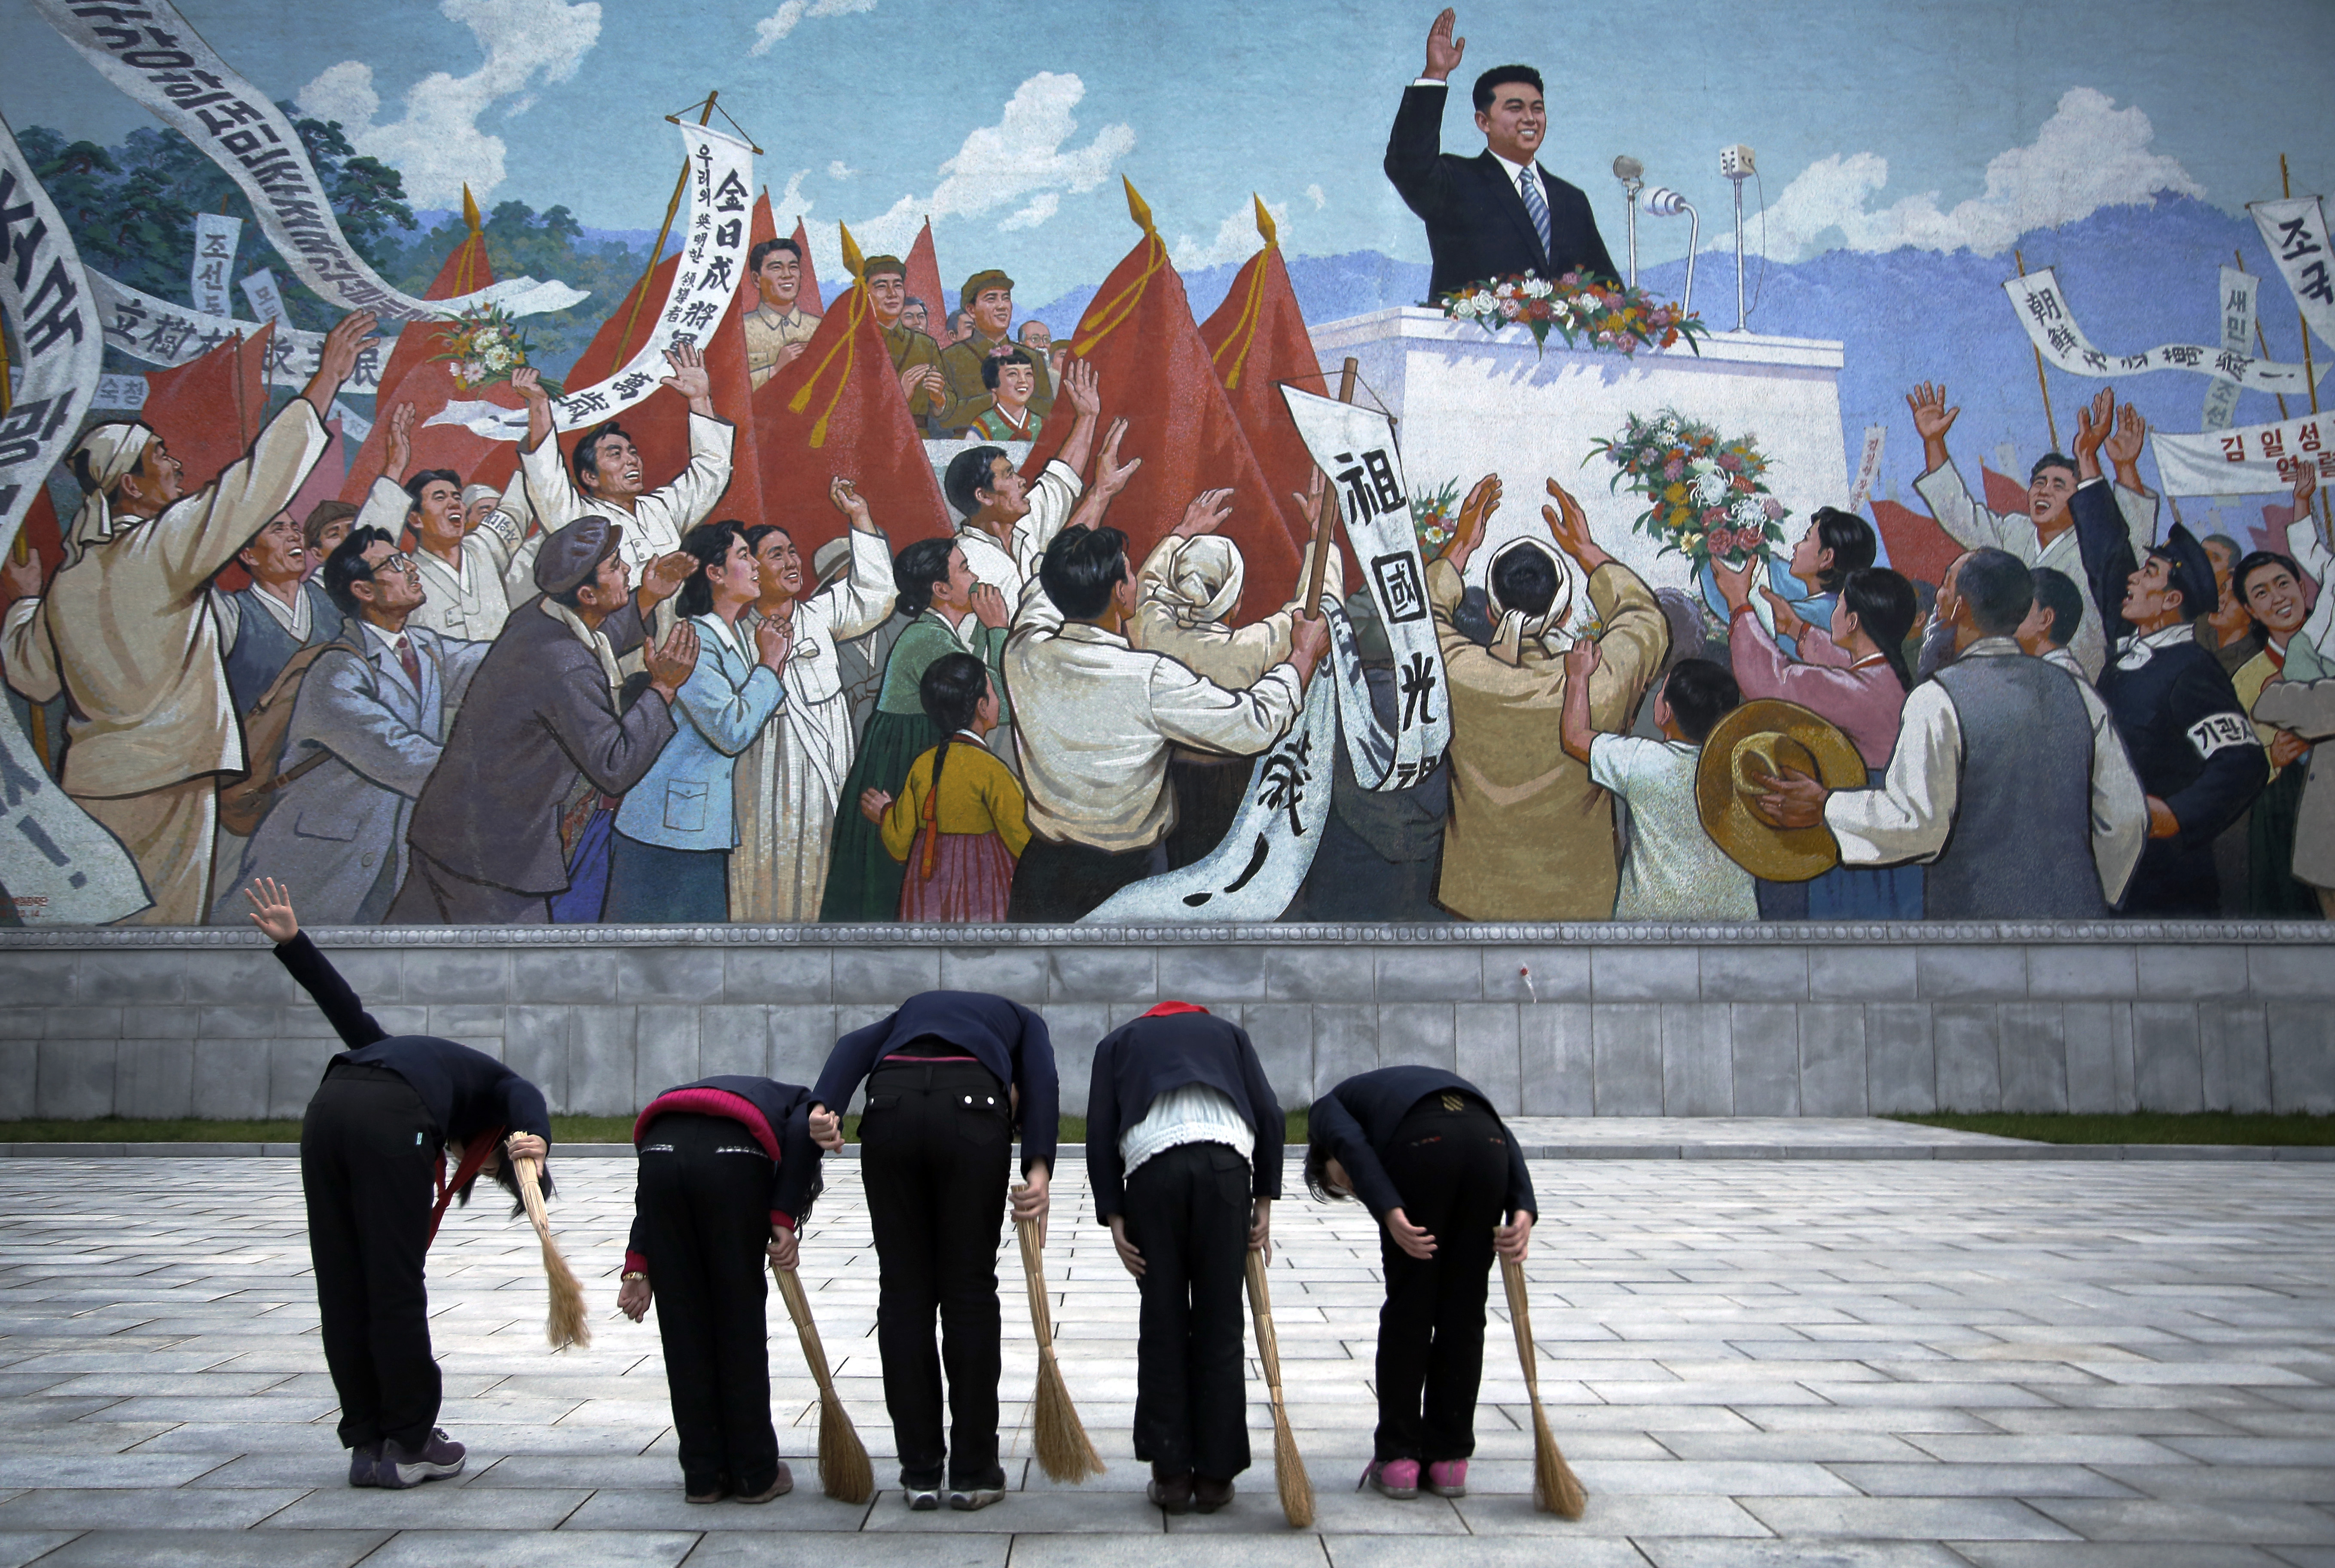 North Korean school girls holding brooms bow to pay their respects toward a mural which shows the late North Korean leader Kim Il Sung delivering a speech, before sweeping the area surrounding this mural on Tuesday, Dec. 1, 2015, in Pyongyang, North Korea, one of over 70 photos that will be on display at Objectifs in Singapore. (AP Photo/Wong Maye-E)